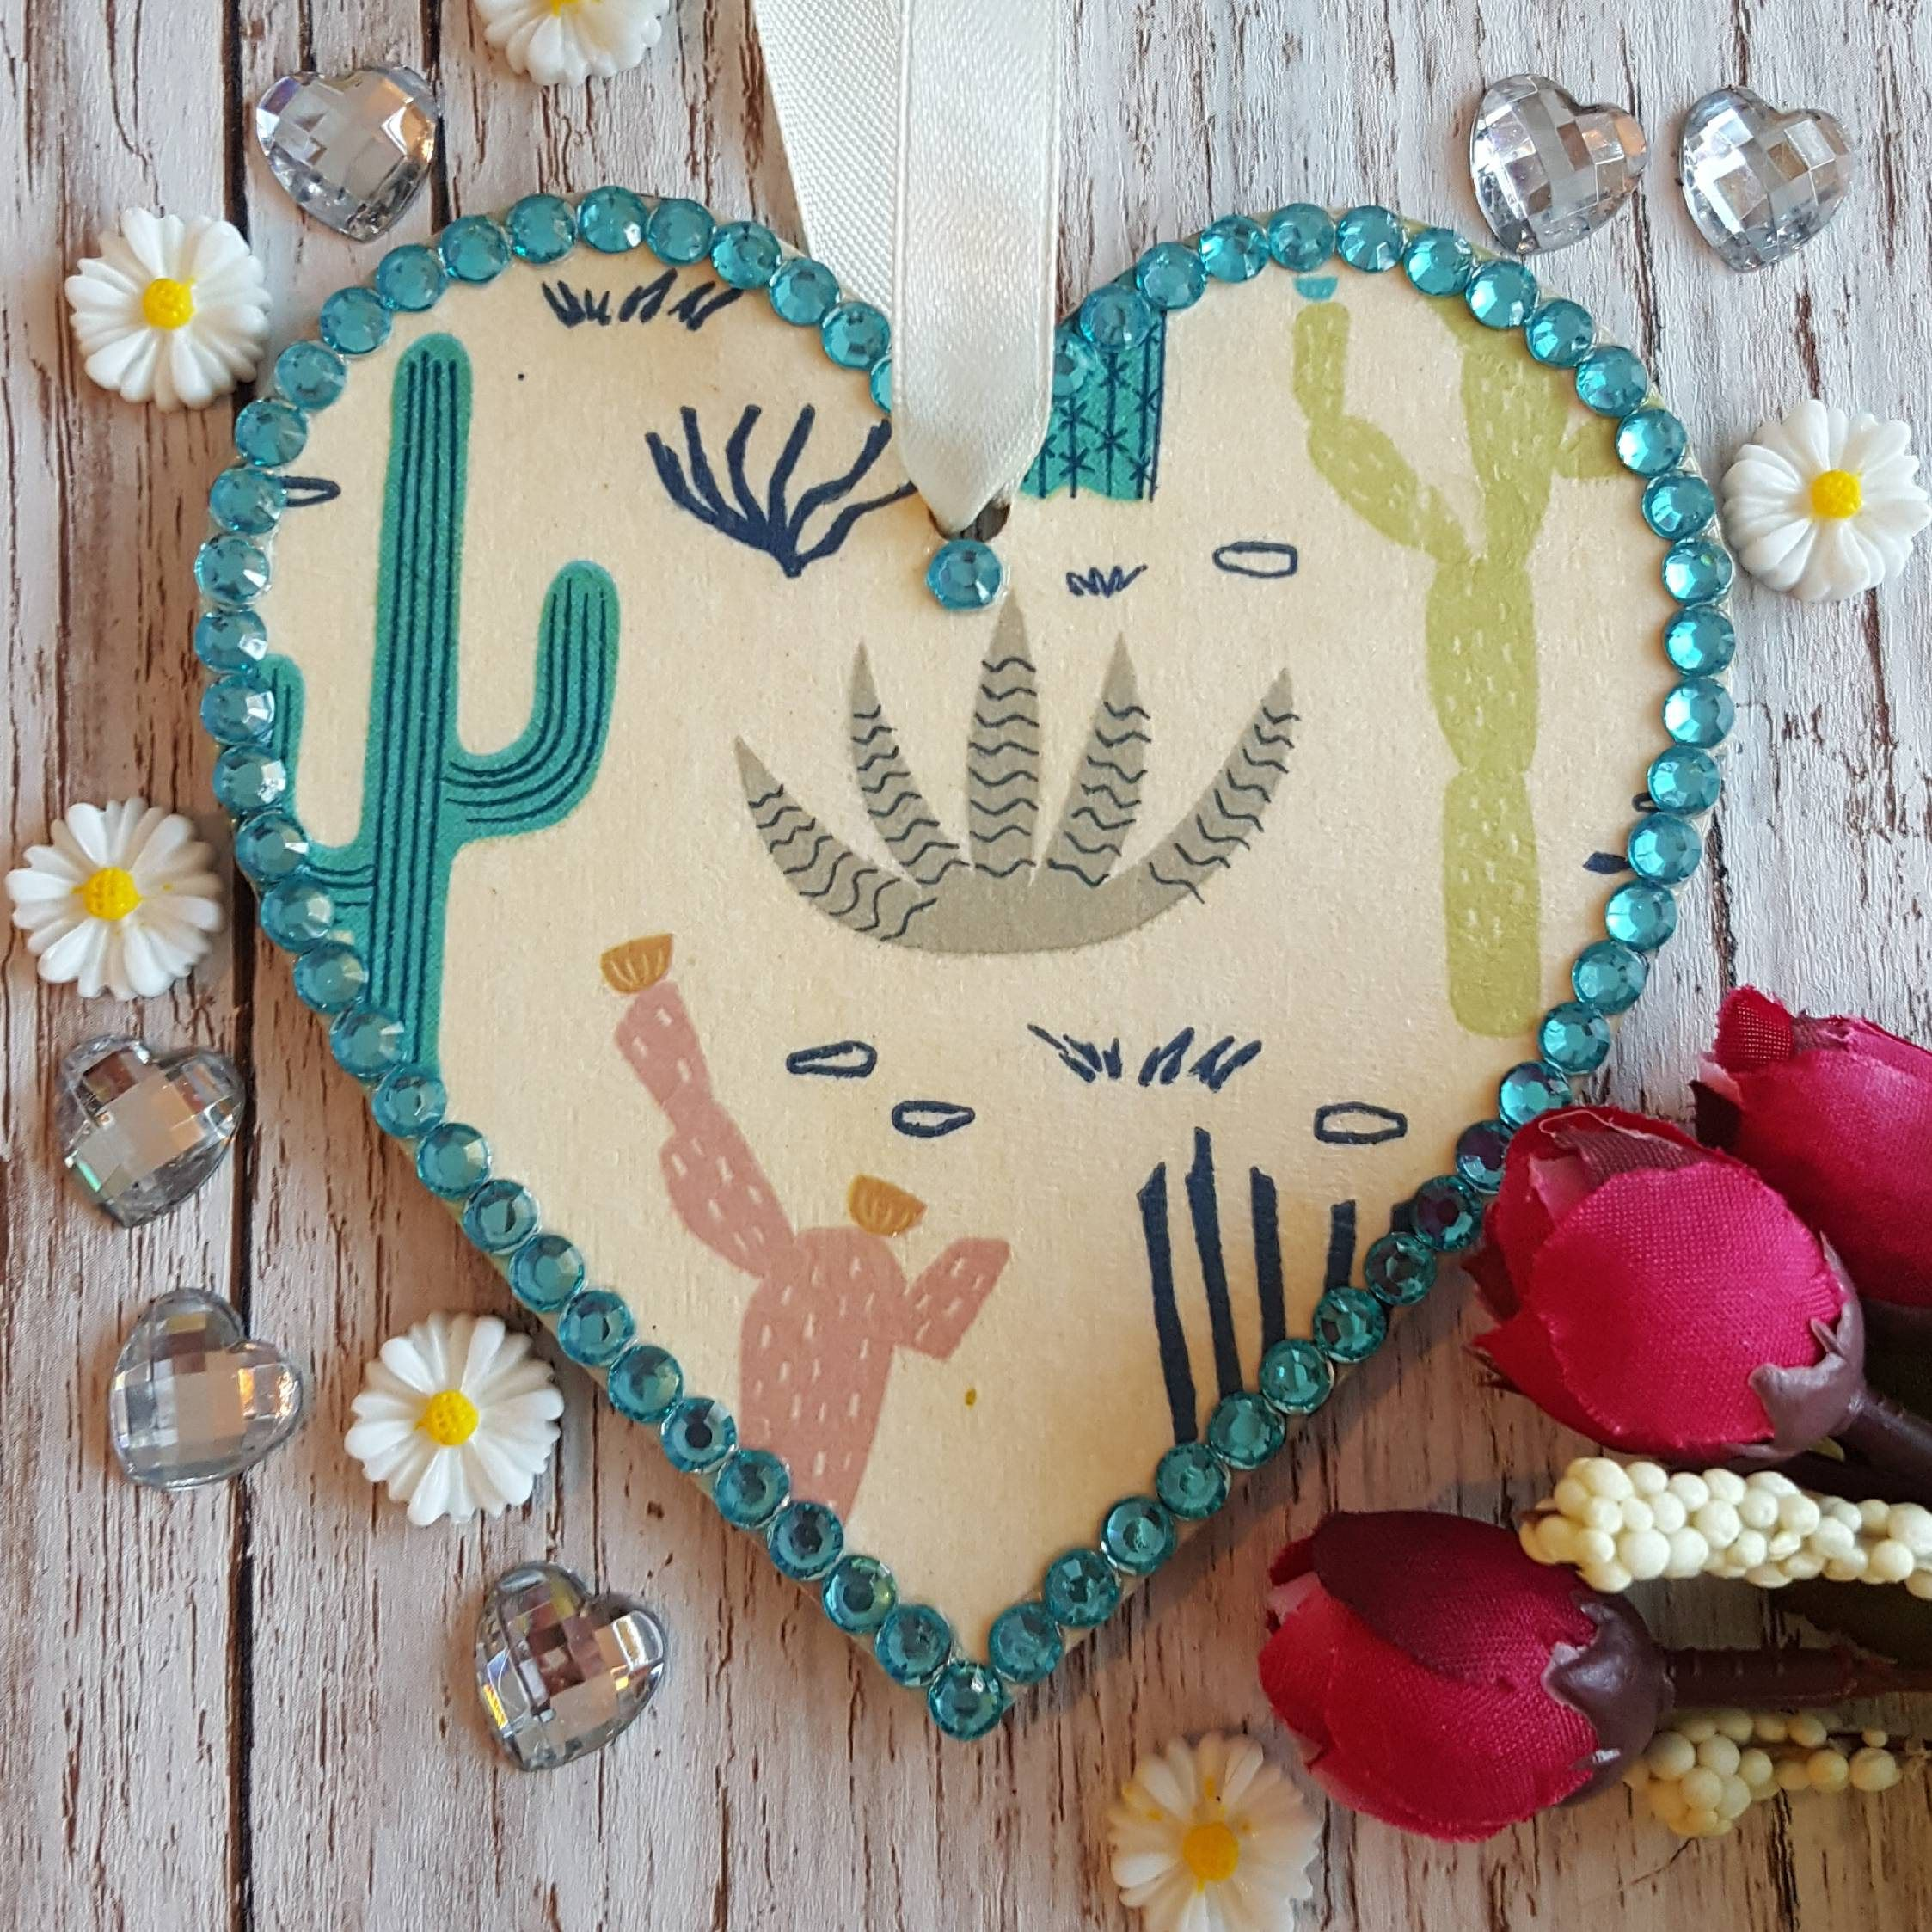 CACTUS Heart   cacti decoration   country cottage   cactus gift   boho decor   hanging Heart   succulent decor   country kitchen is part of Cactus decor Hanging - This listing is for 1 hand decorated hanging heart with cacti  The heart was decorated using decoupage, is edged with blue rhinestones  It measures approx 10x10xcm and is decorated on both sides  Other designs are available in my shop  Commissions welcome, please get in touch